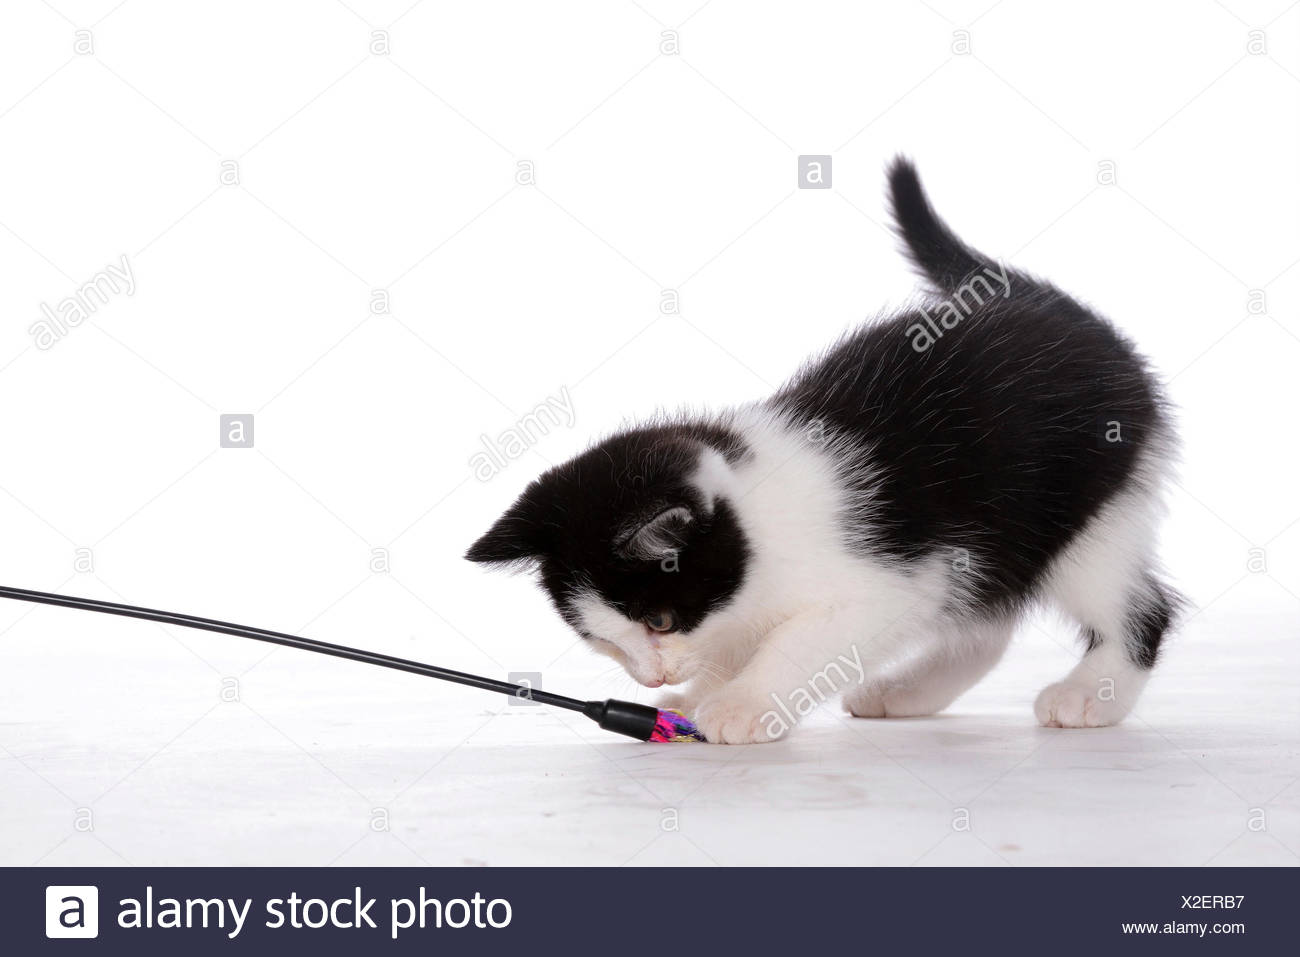 domestic cat, house cat (Felis silvestris f. catus), spotted black and whit kitten playing with a feather frond - Stock Image